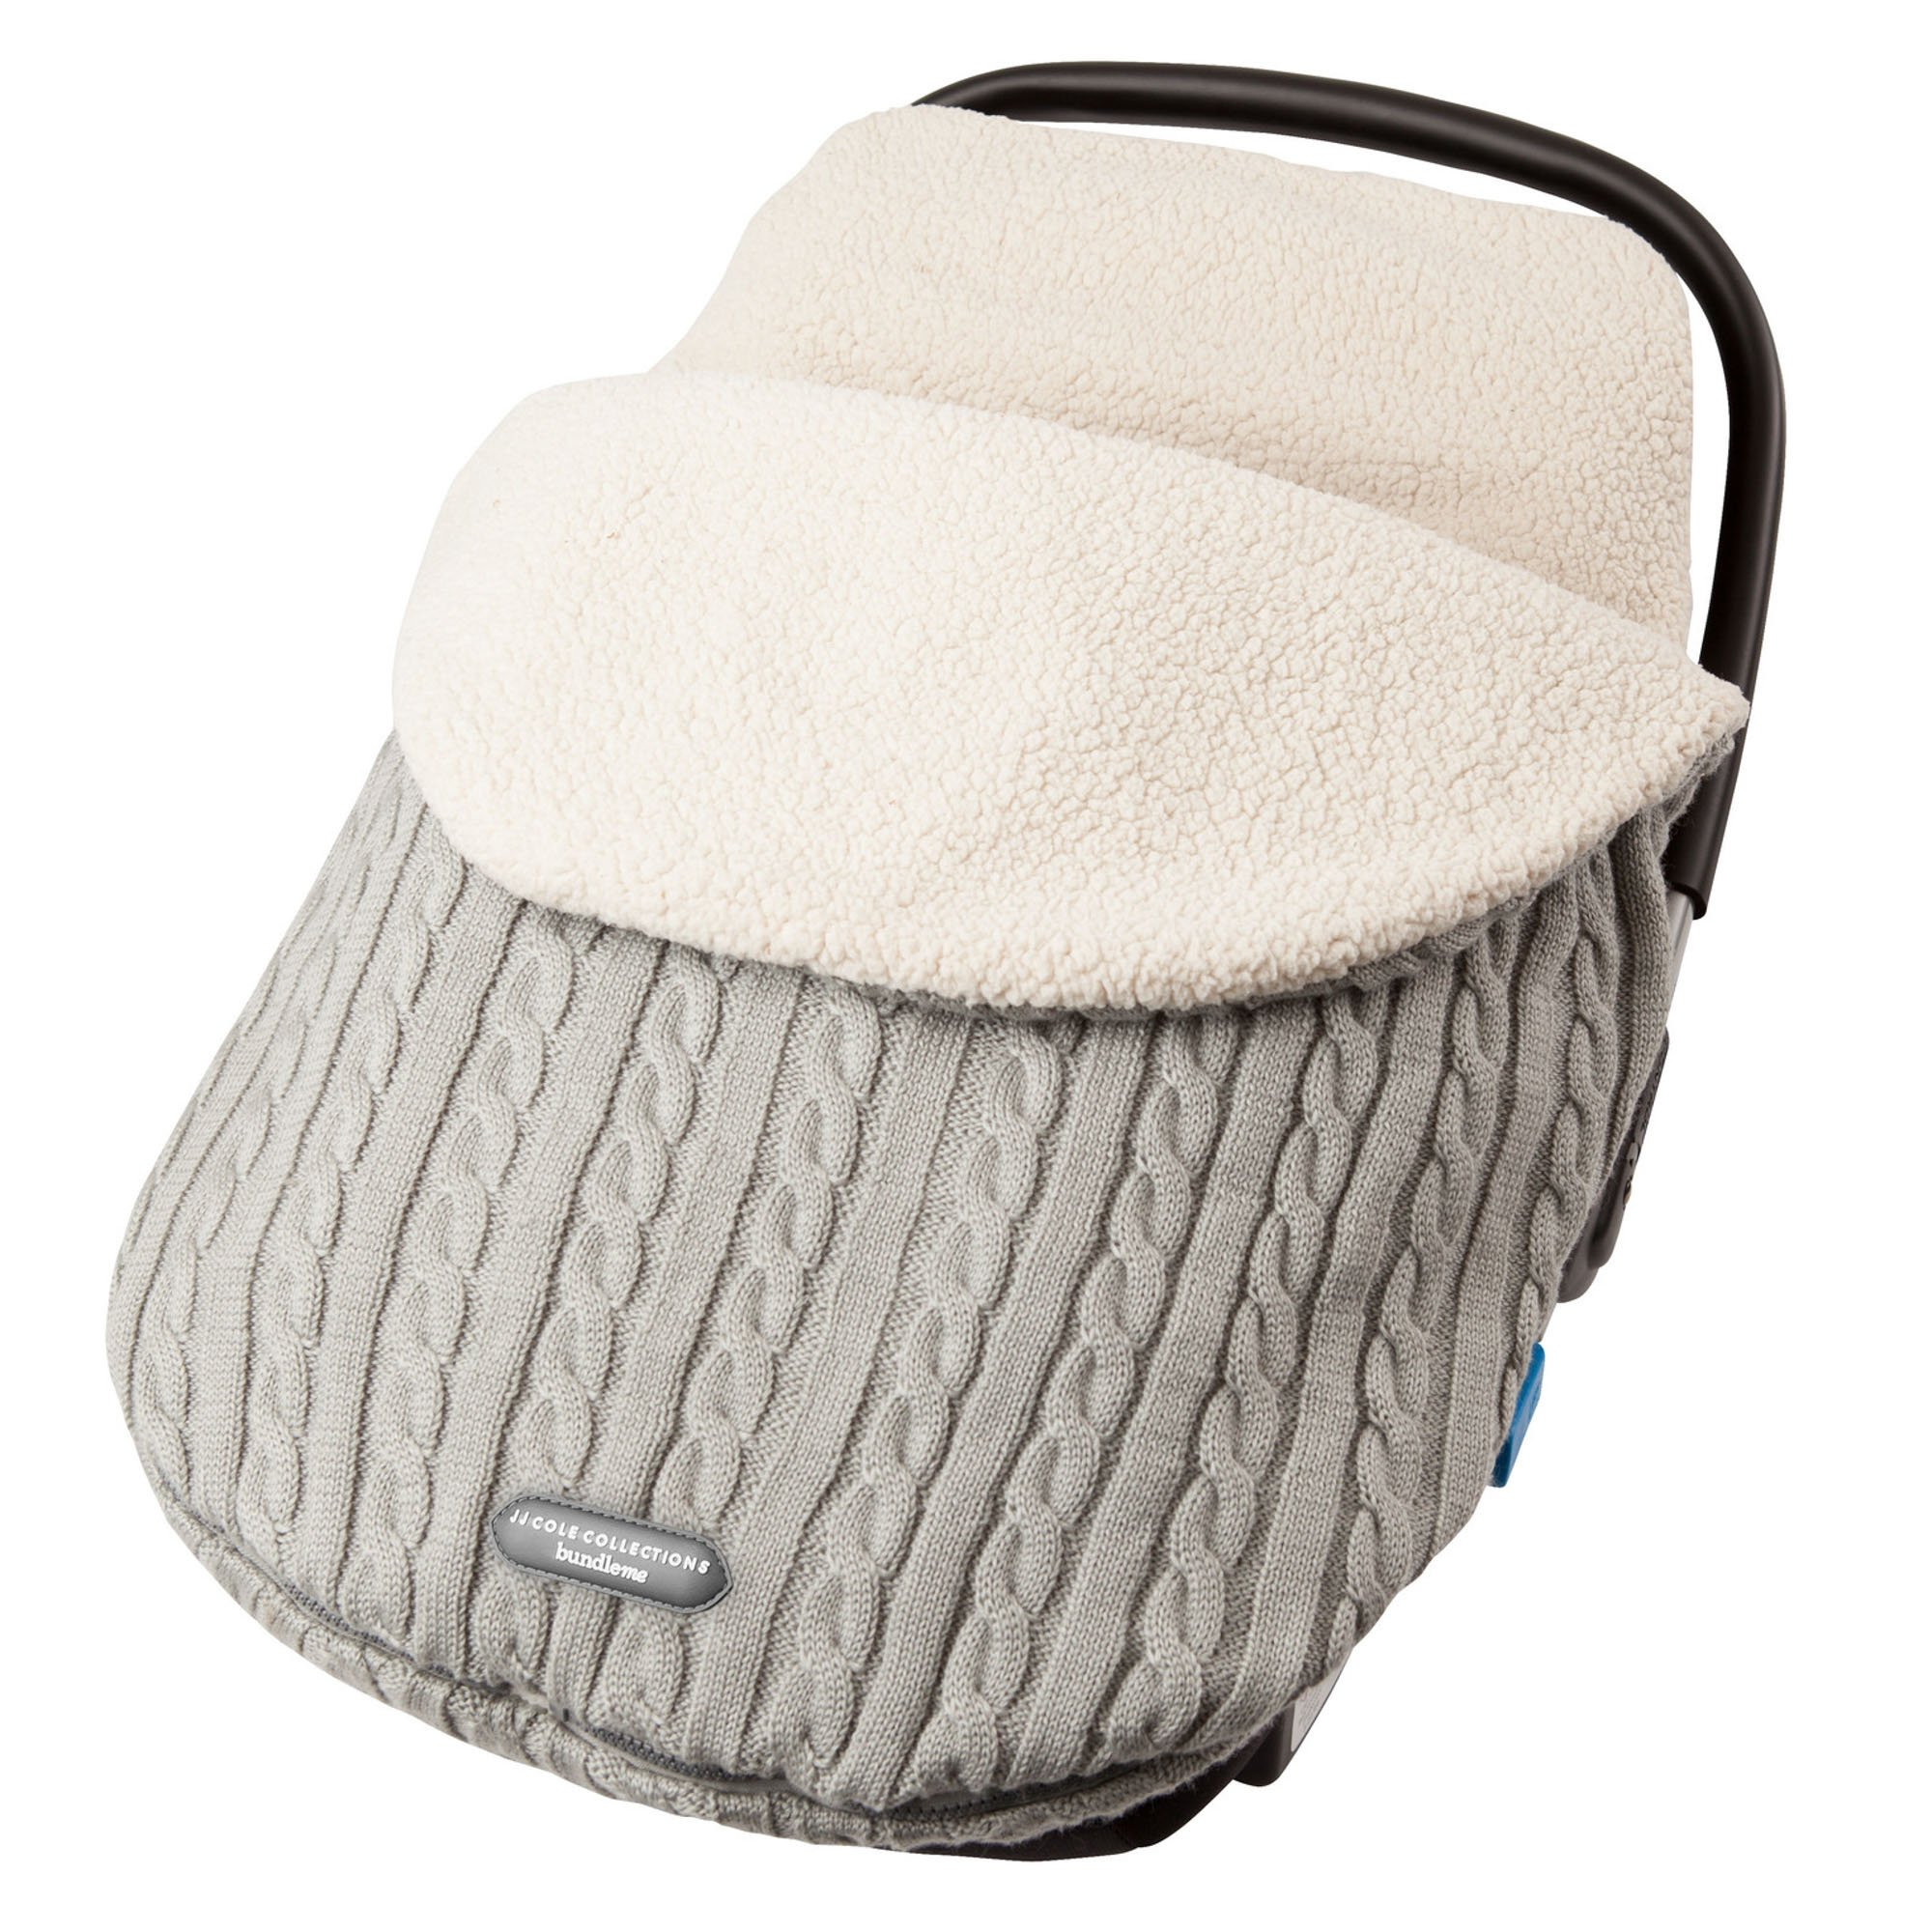 JJ Cole - Knit Bundleme, Canopy Style Bunting Bag to Protect Baby from Cold and Winter Weather in Car Seats and Strollers, Graphite, Birth to 1 Year by JJ Cole (Image #1)